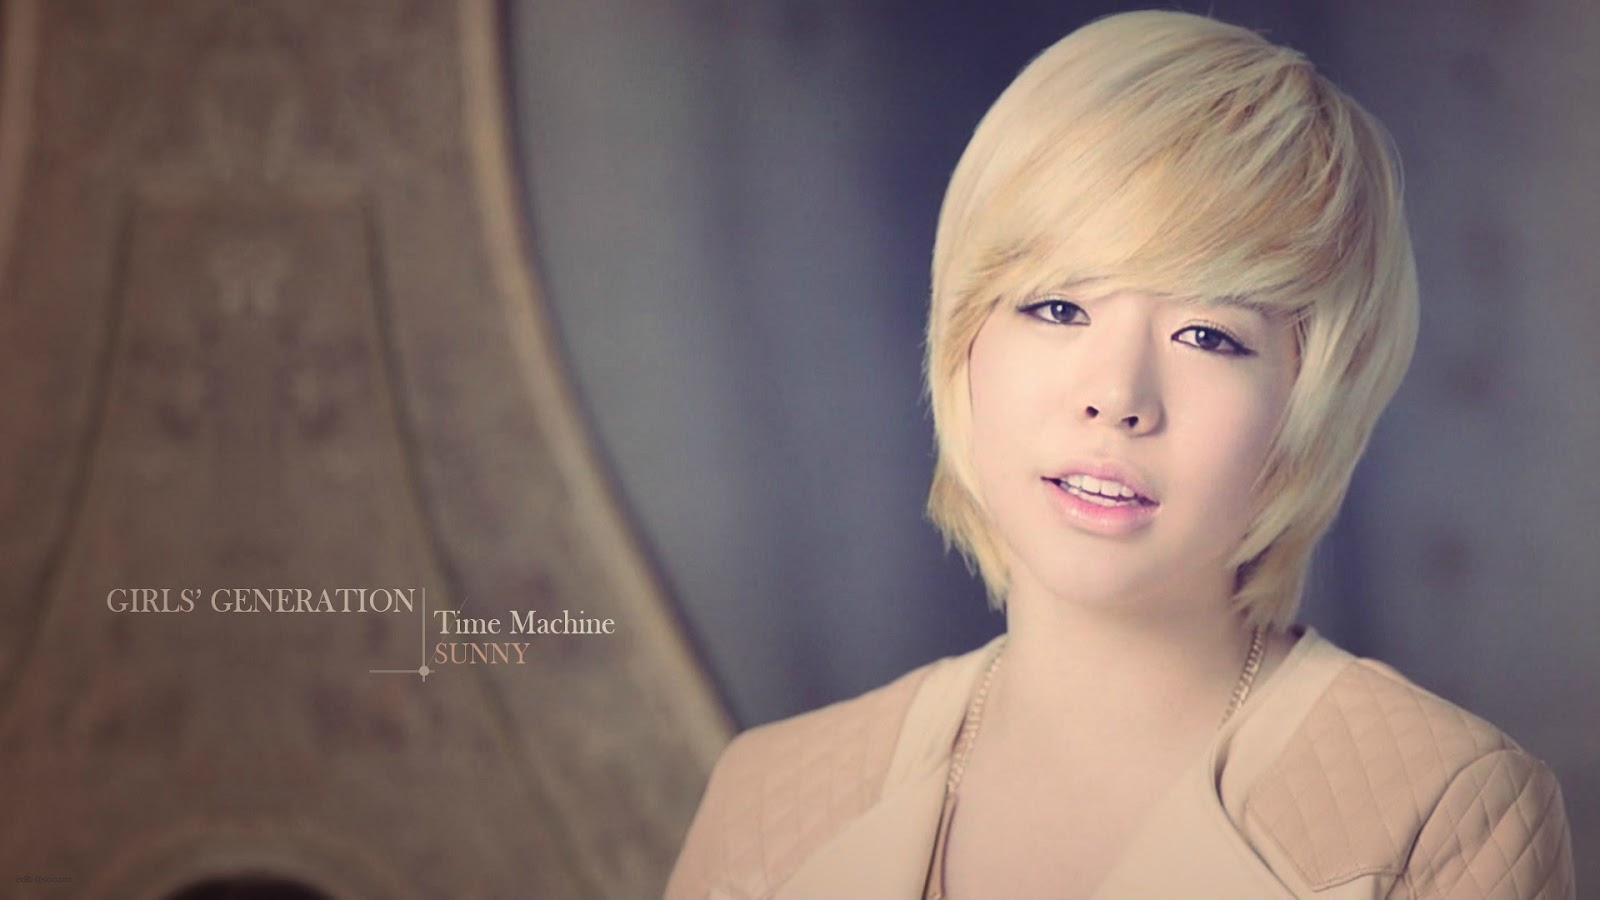 http://1.bp.blogspot.com/-UcqDSdo0ejY/UBvq12B9nPI/AAAAAAAAJq8/MbYkJLSJtmE/s1600/SNSD-Sunny-Time-Machine-Wallpaper-as-generation-snsd-30039710-1920-1080.jpg